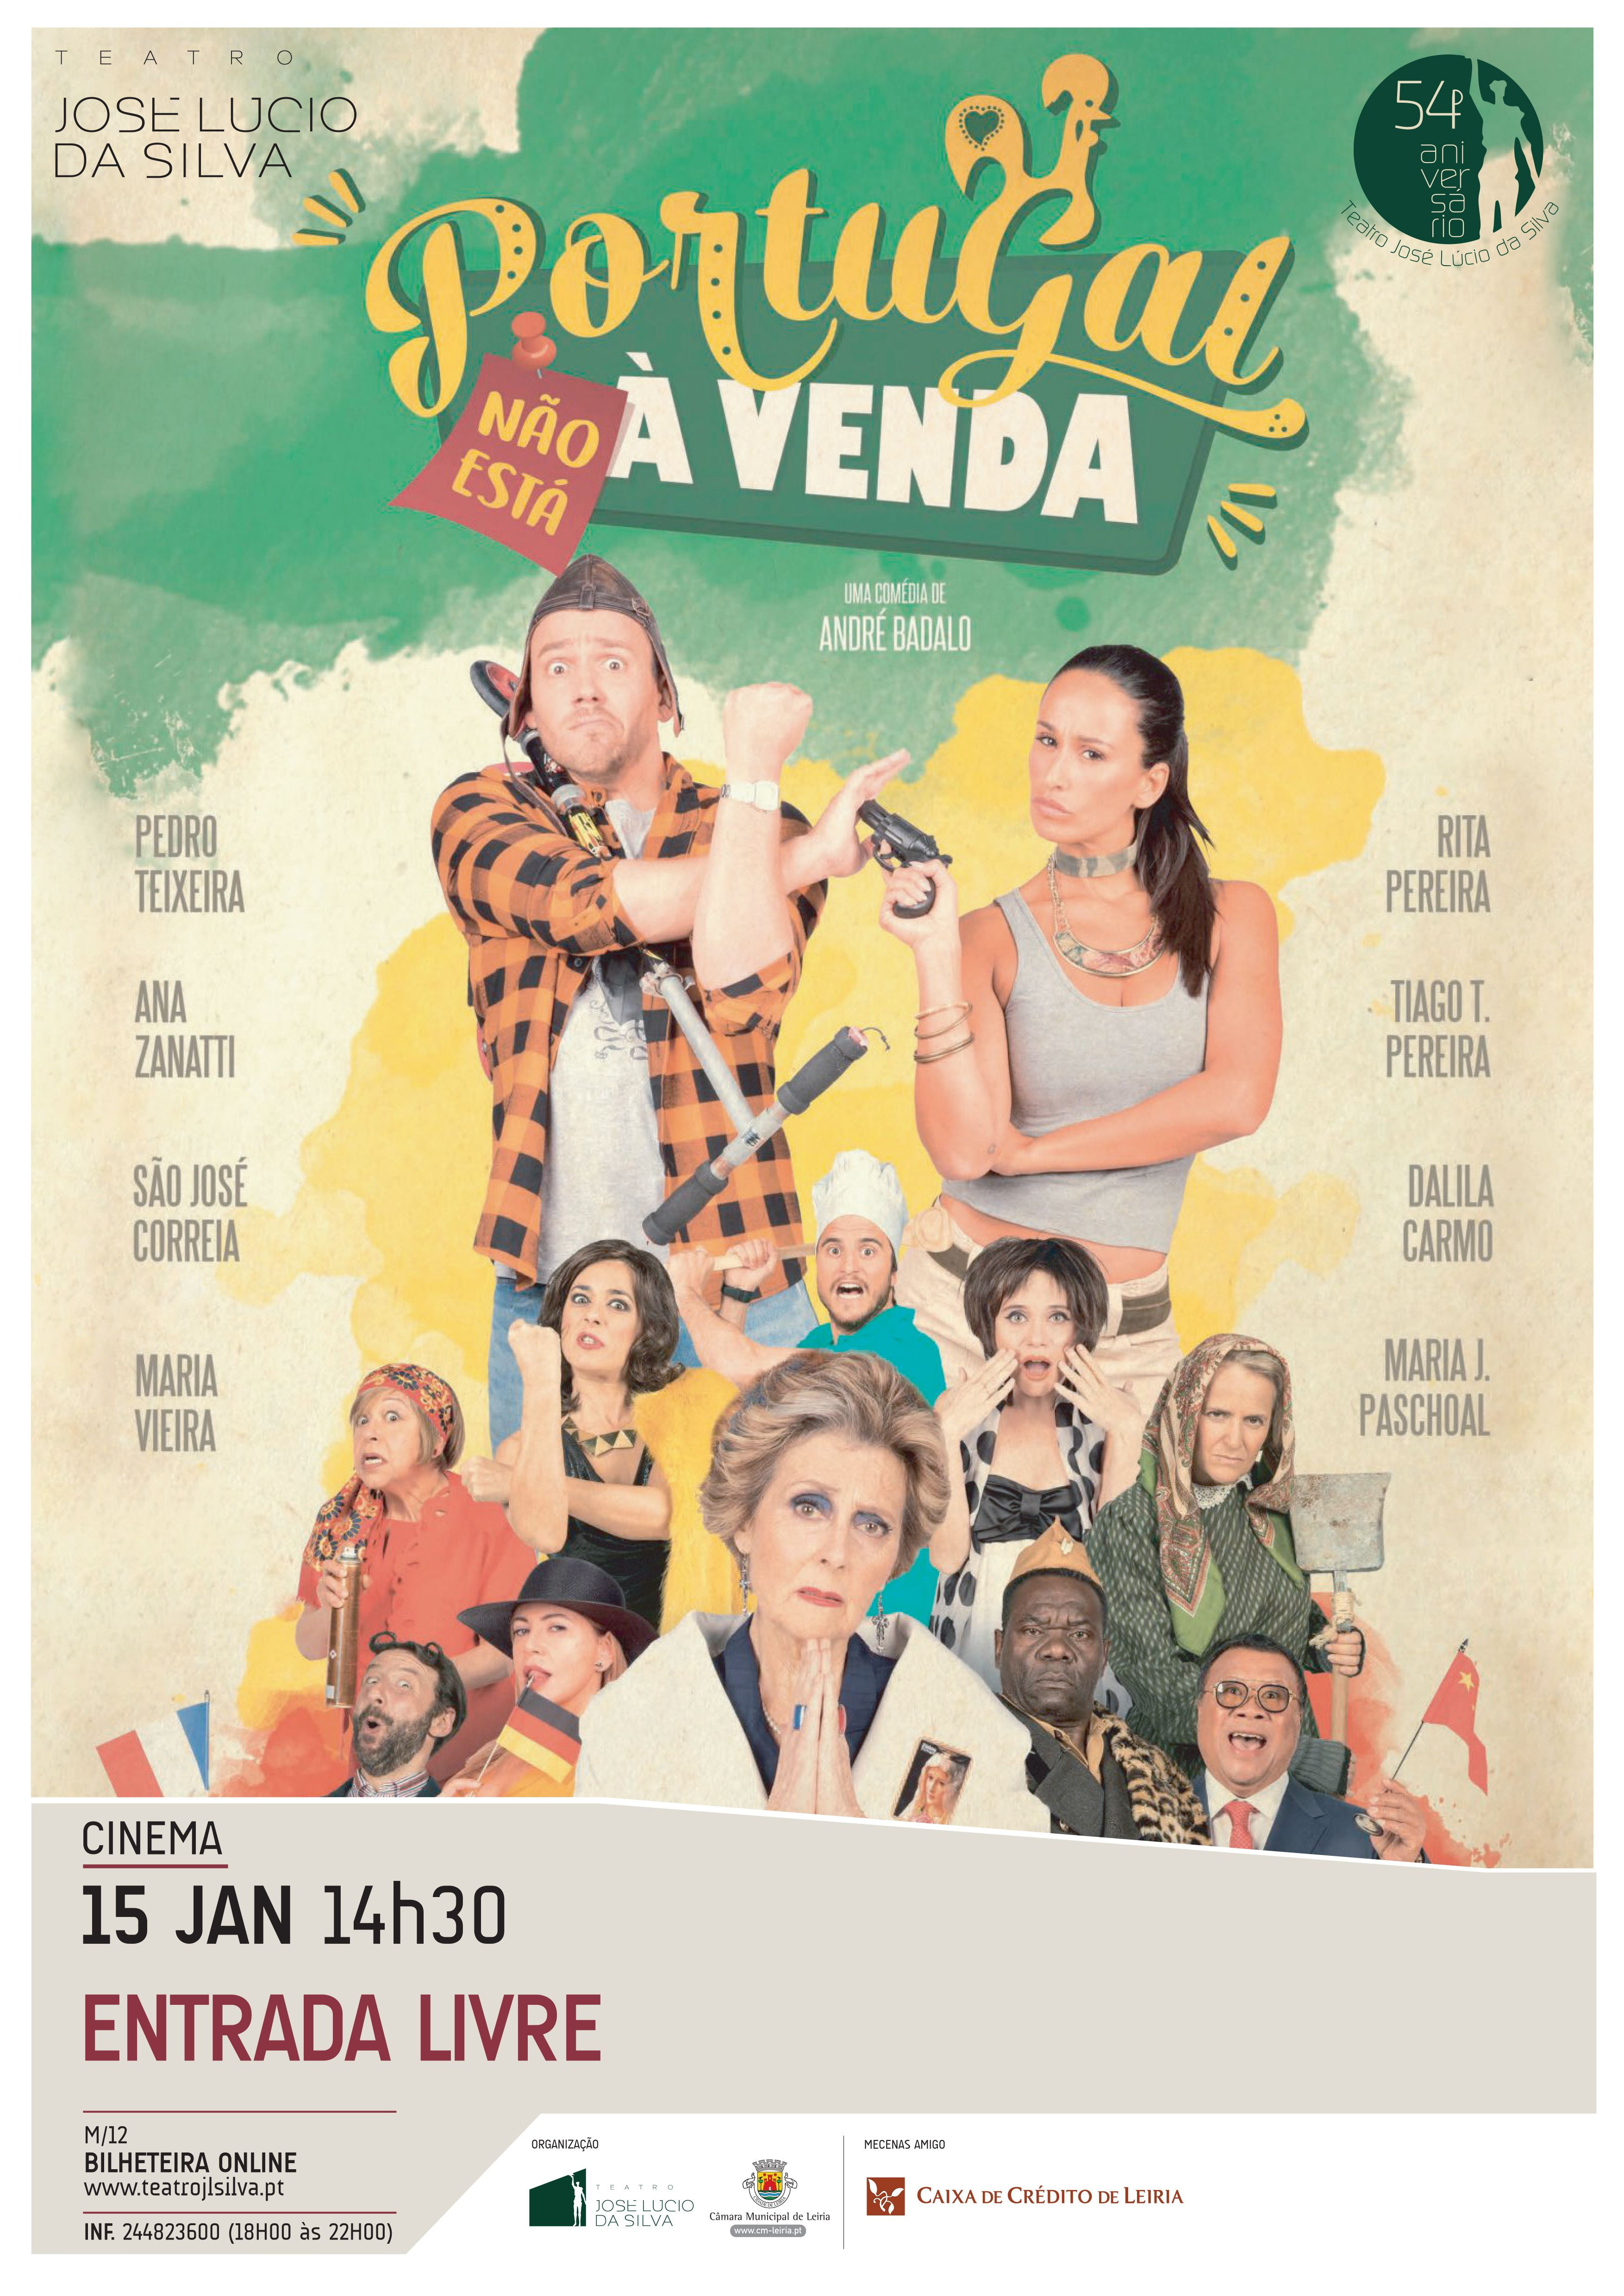 Pin De Fausto Oliveira Vicente Em My Own Work Filmes Completos Filmes Completos Online Filmes